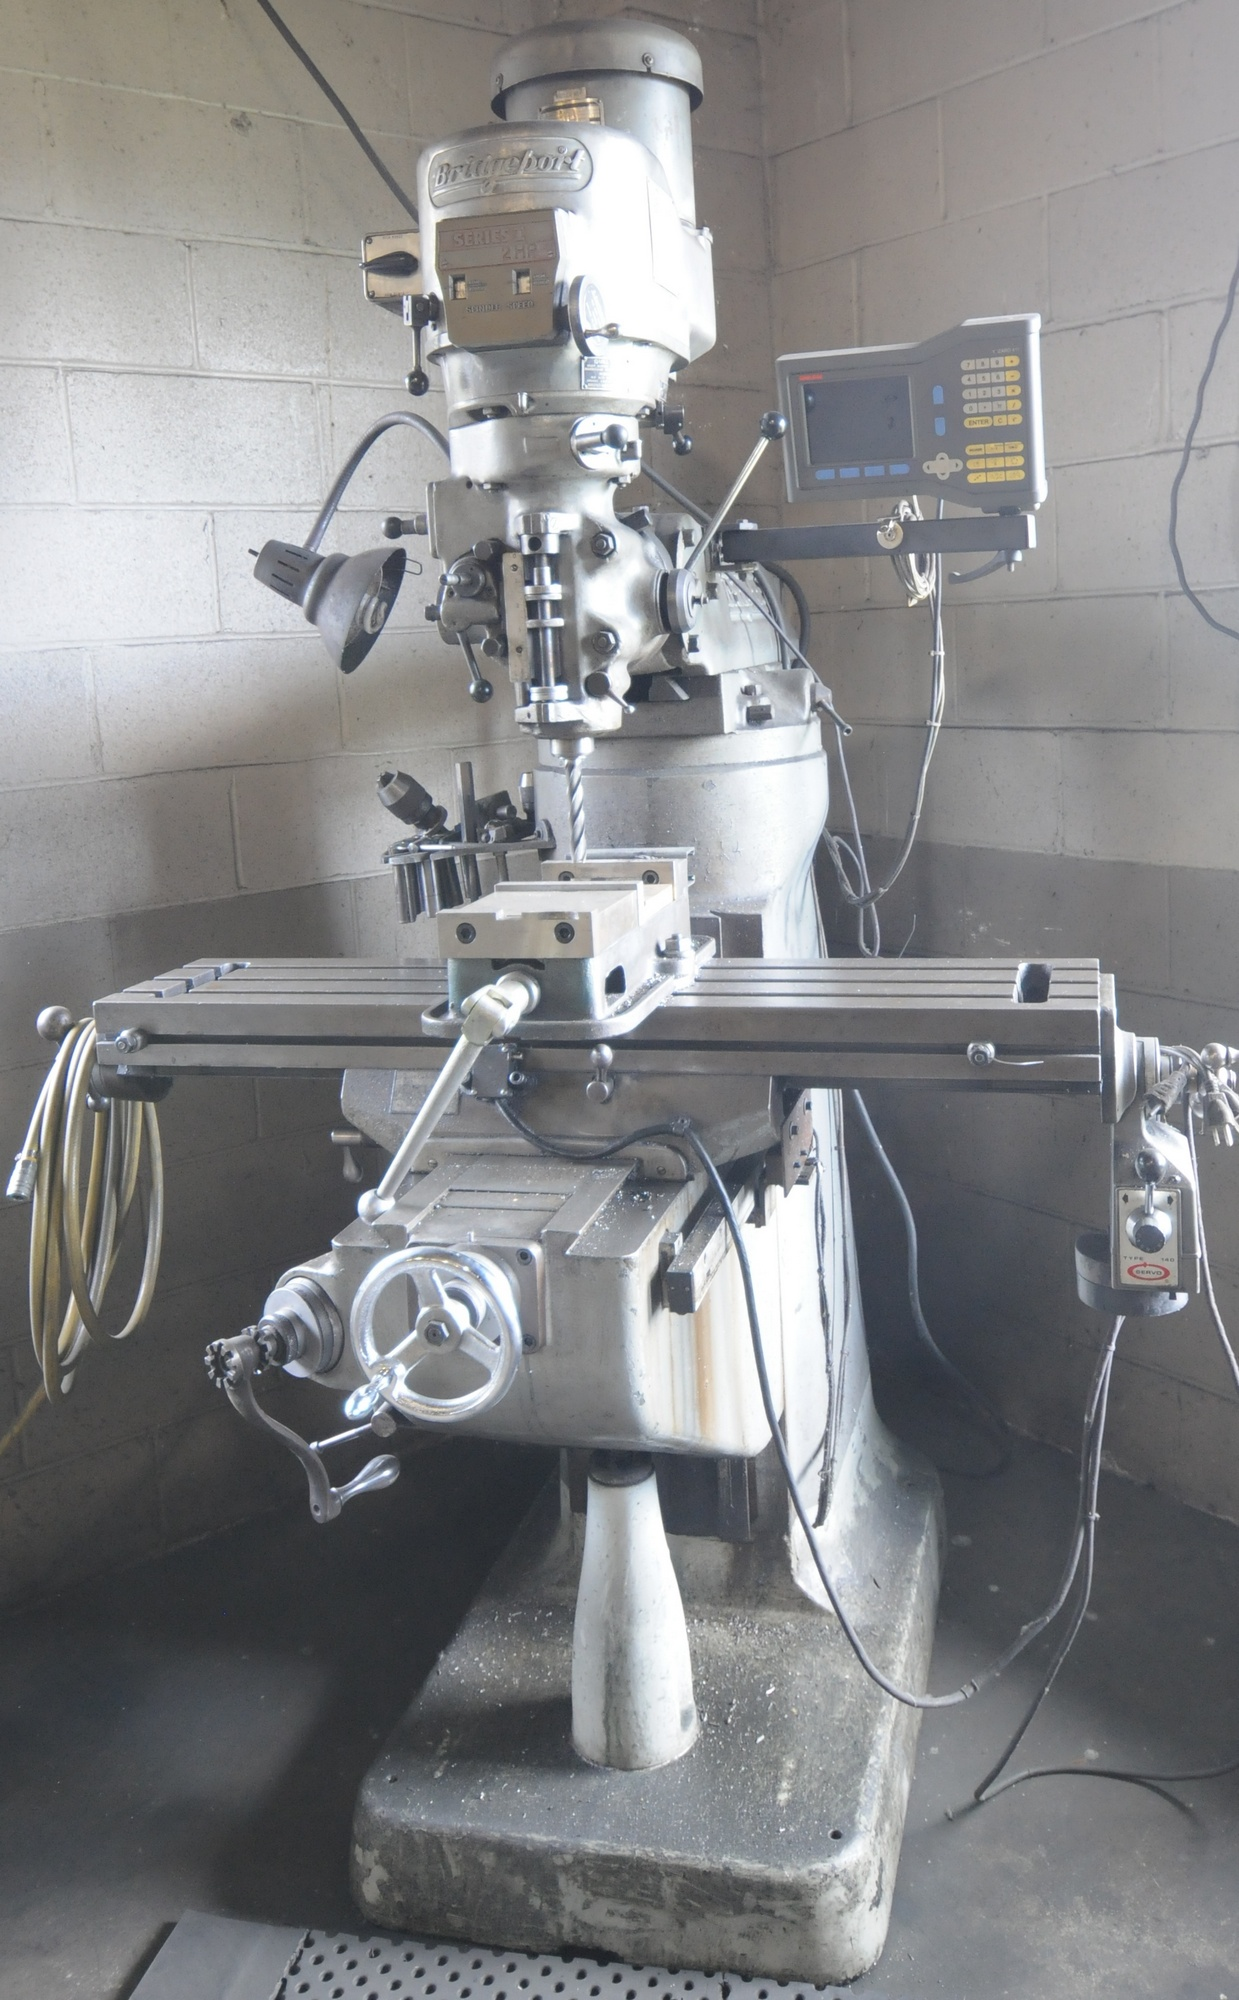 """Lot 22 - BRIDGEPORT SERIES I VERTICAL MILLING MACHINE WITH ANALIM 2 AXIS DRO, 42""""X9"""" TABLE, SPEEDS TO 4200"""